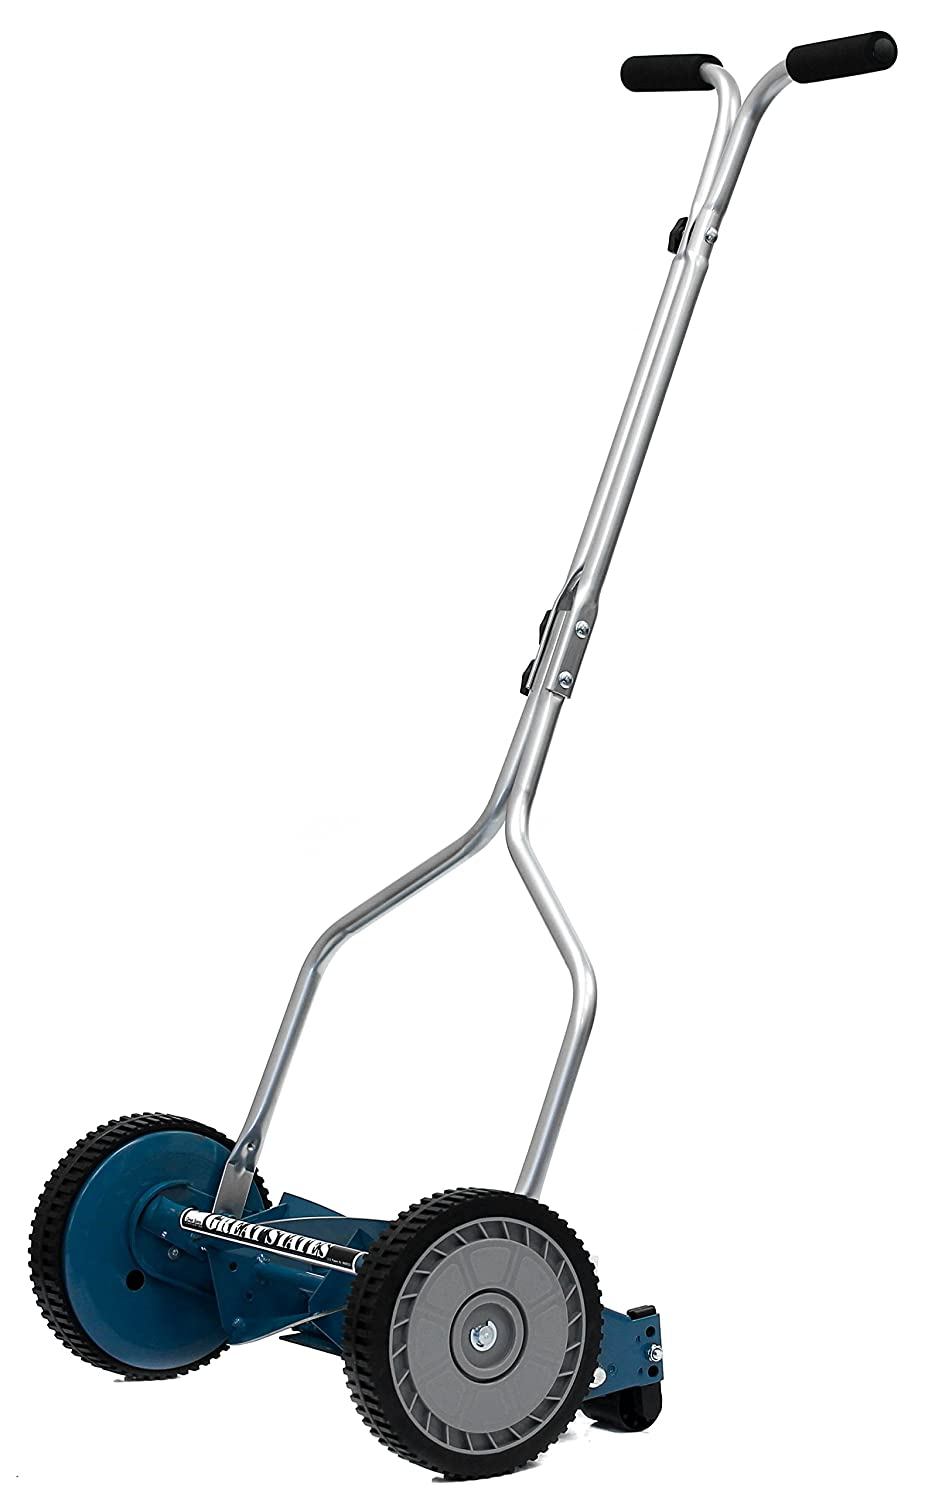 Amazon.com : Great States 204-14 Hand Reel 14 Inch Push Lawn Mower : Walk  Behind Lawn Mowers : Garden & Outdoor